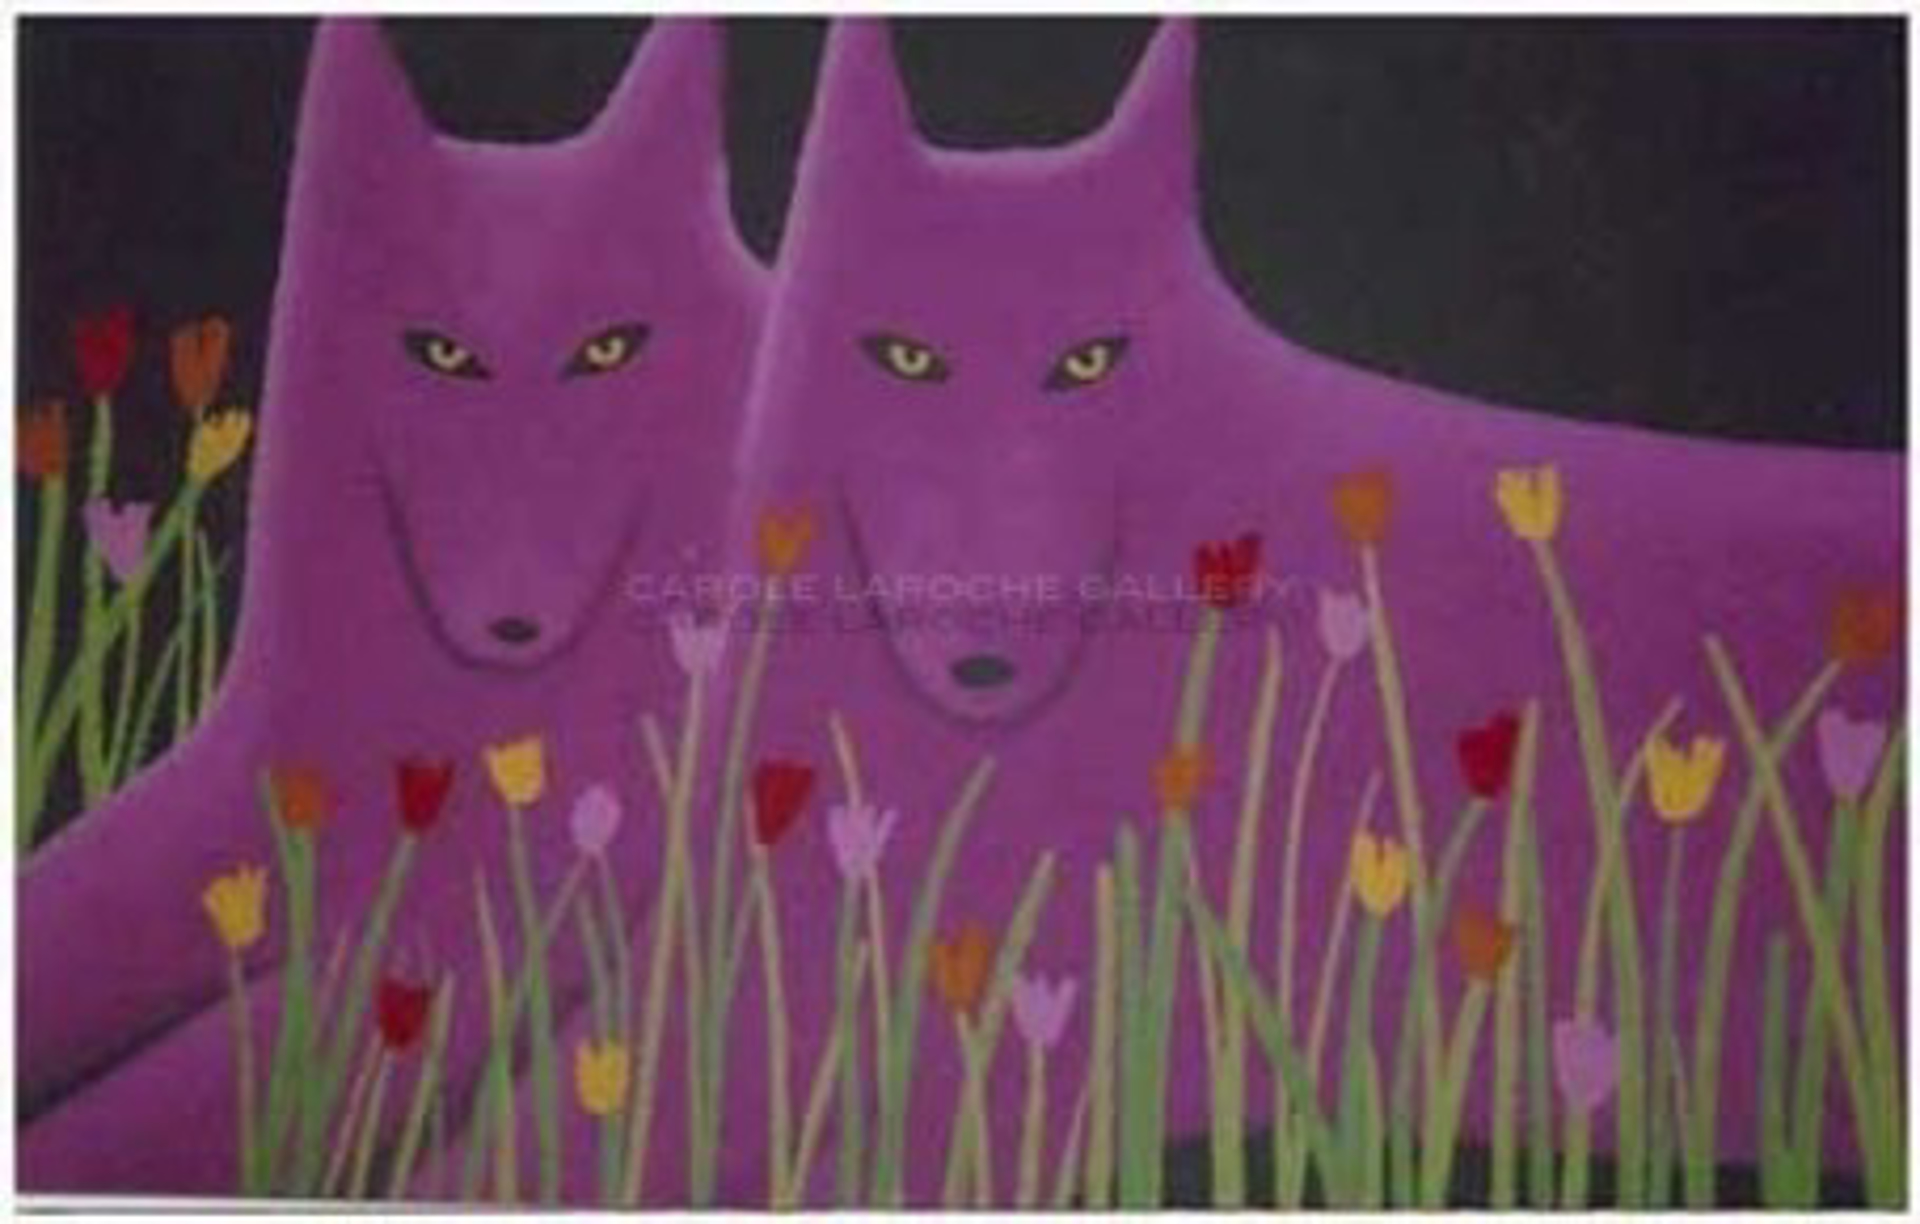 """TWO MAGENTA WOLVES AND WILDFLOWERS - limited edition giclee on canvas 25""""x35"""" by Carole LaRoche"""